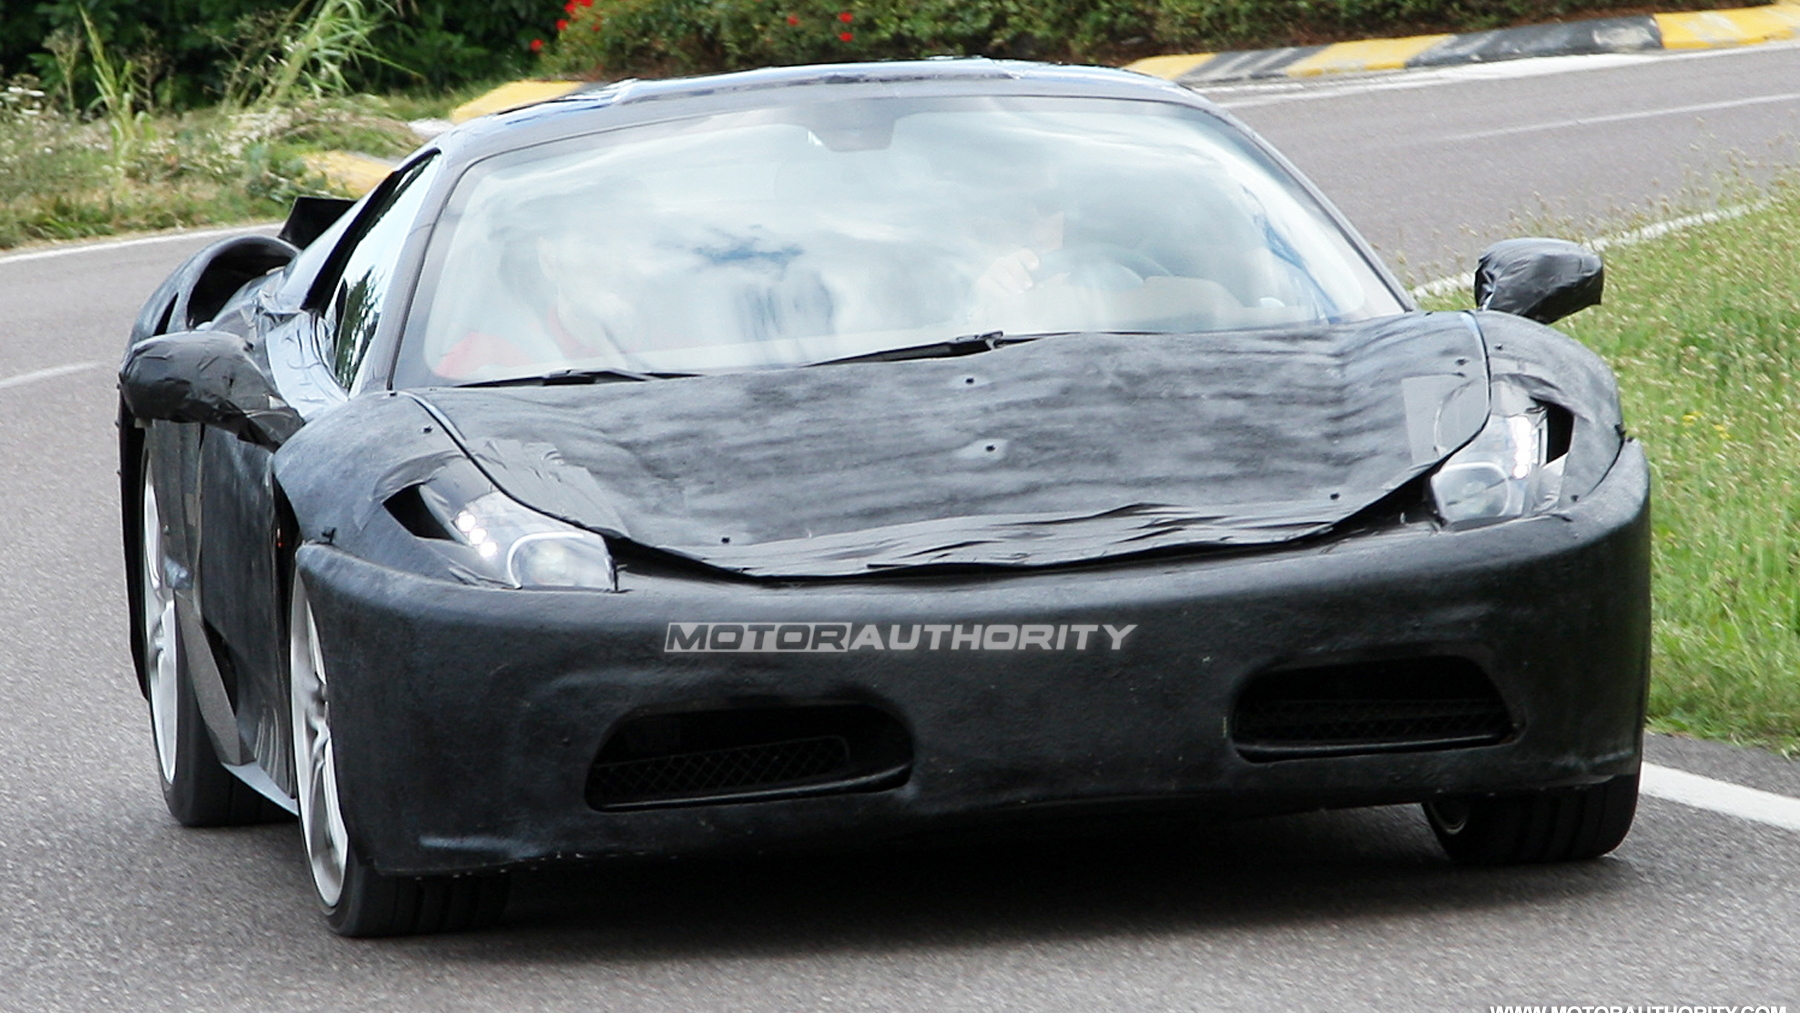 2011 ferrari f450 prototype spy shots july 001